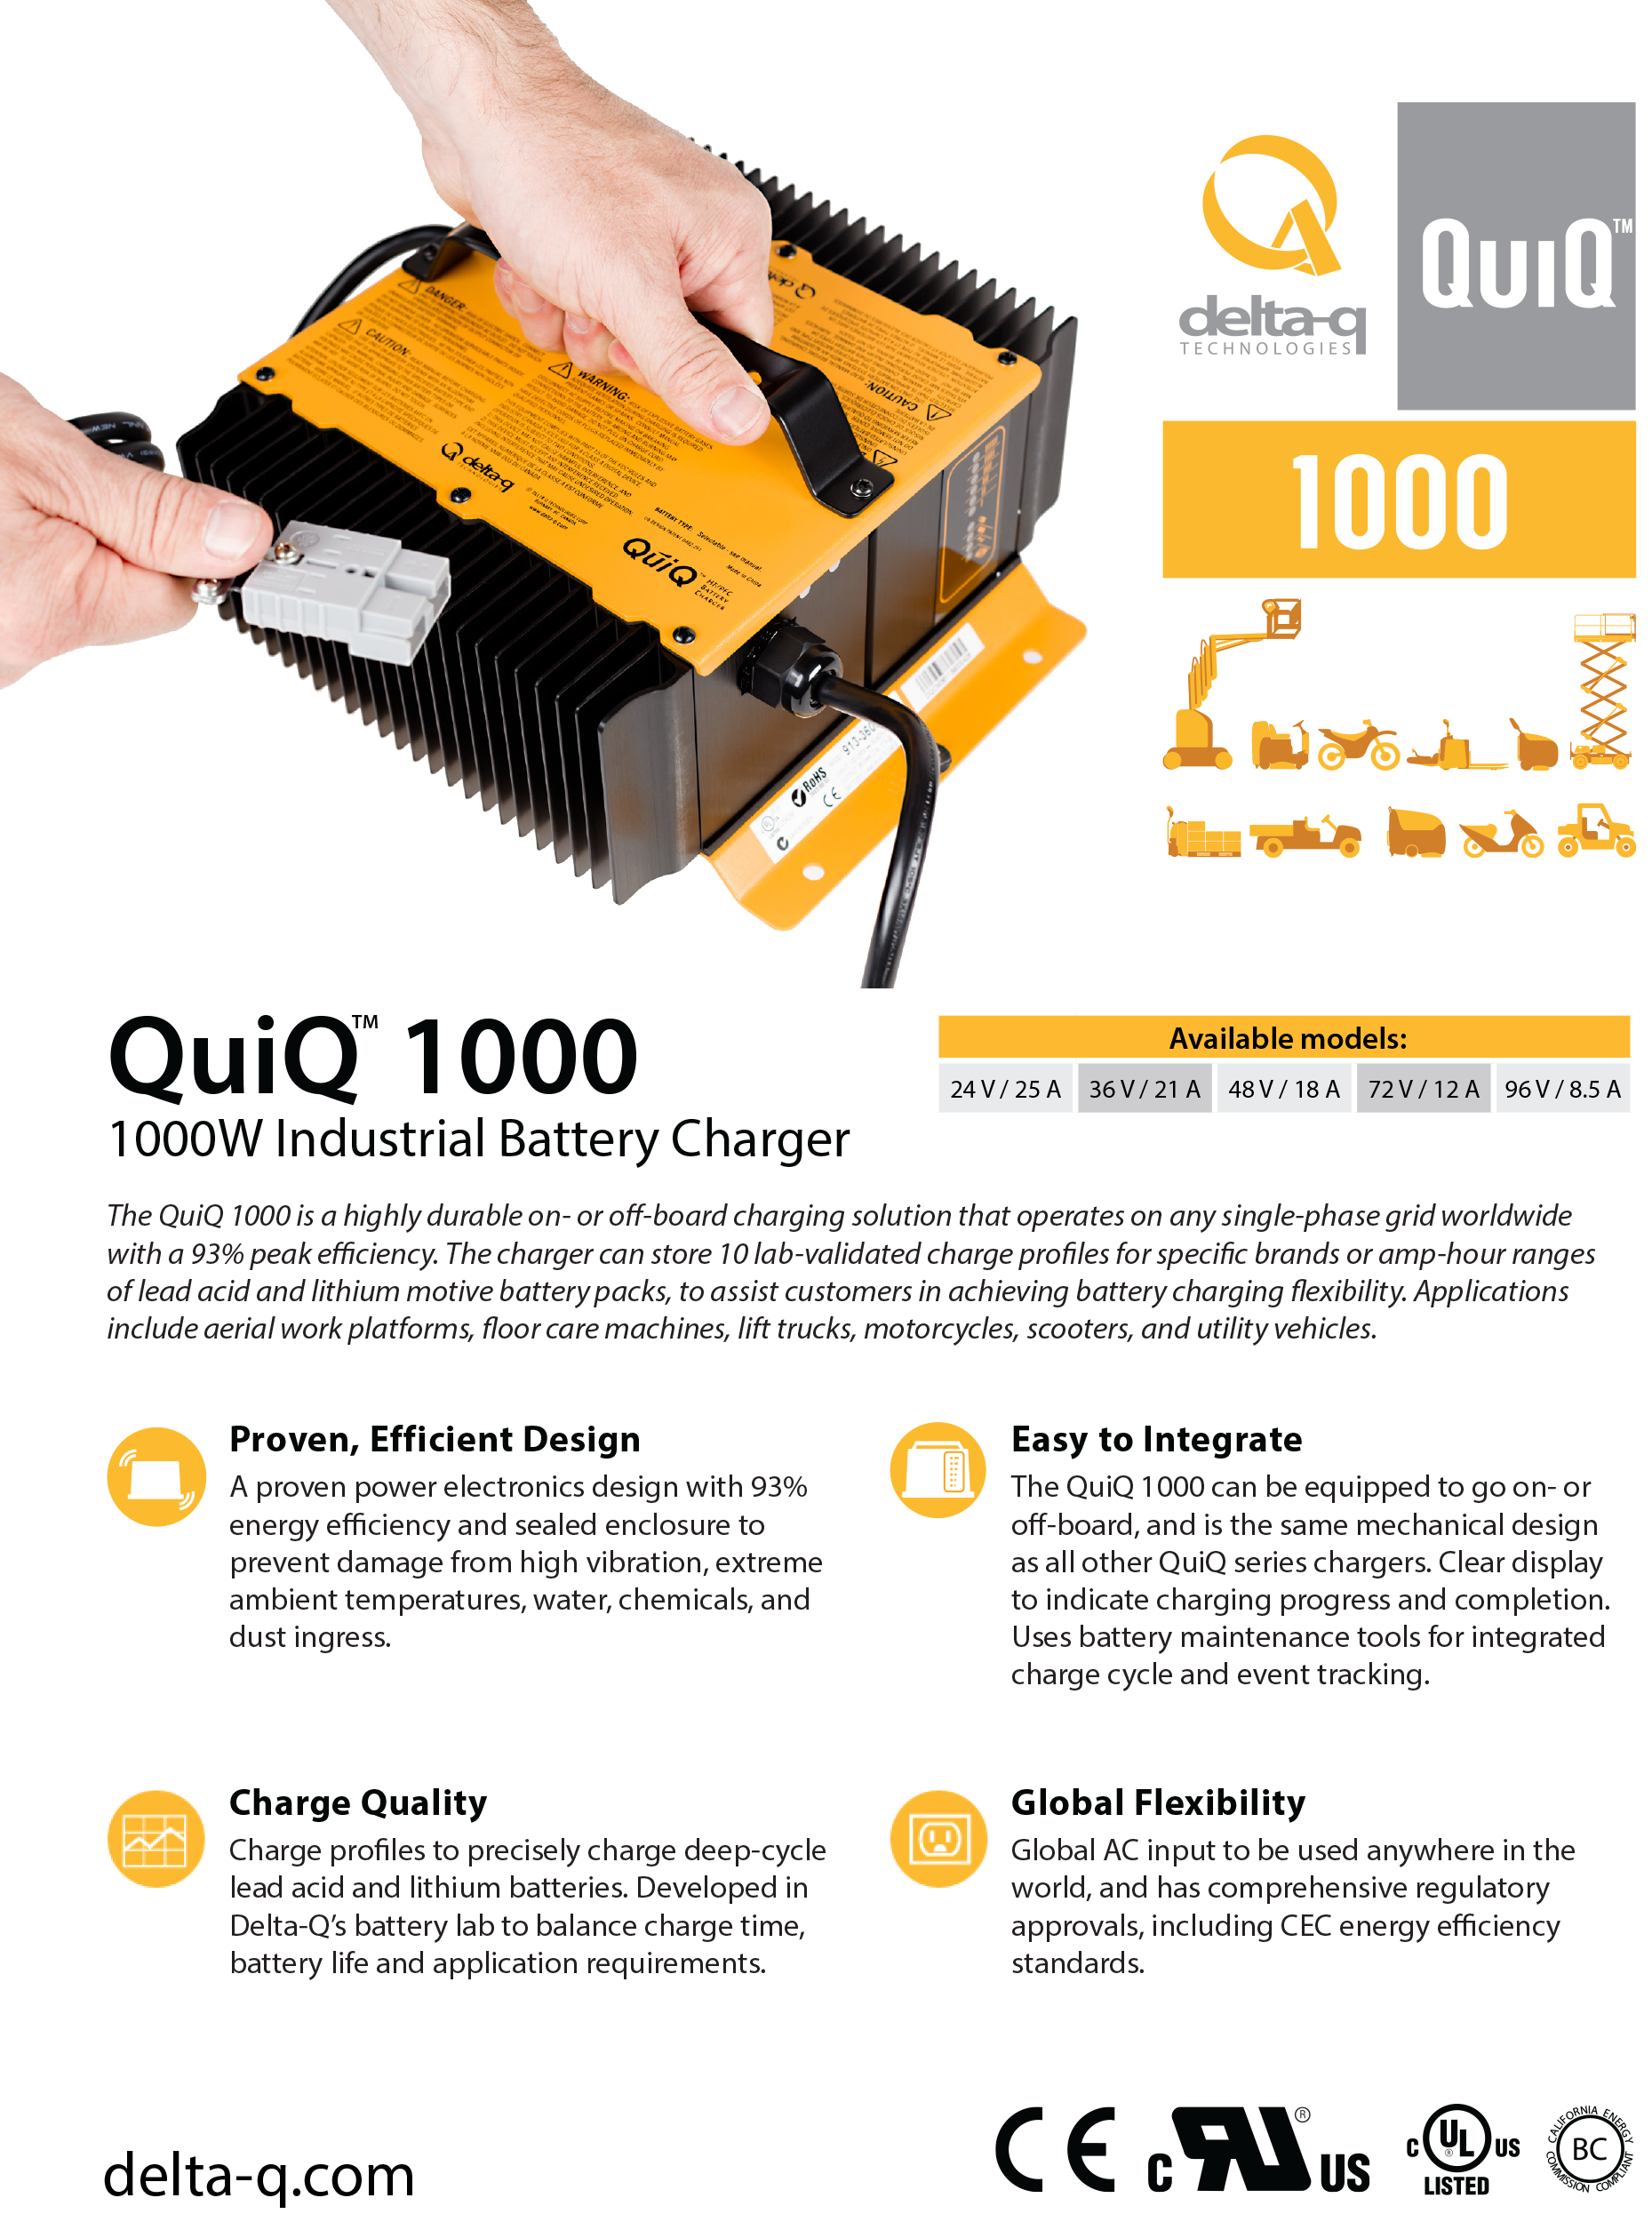 Delta-Q_QuiQ1000_BatteryCharger_Specifications-1.png